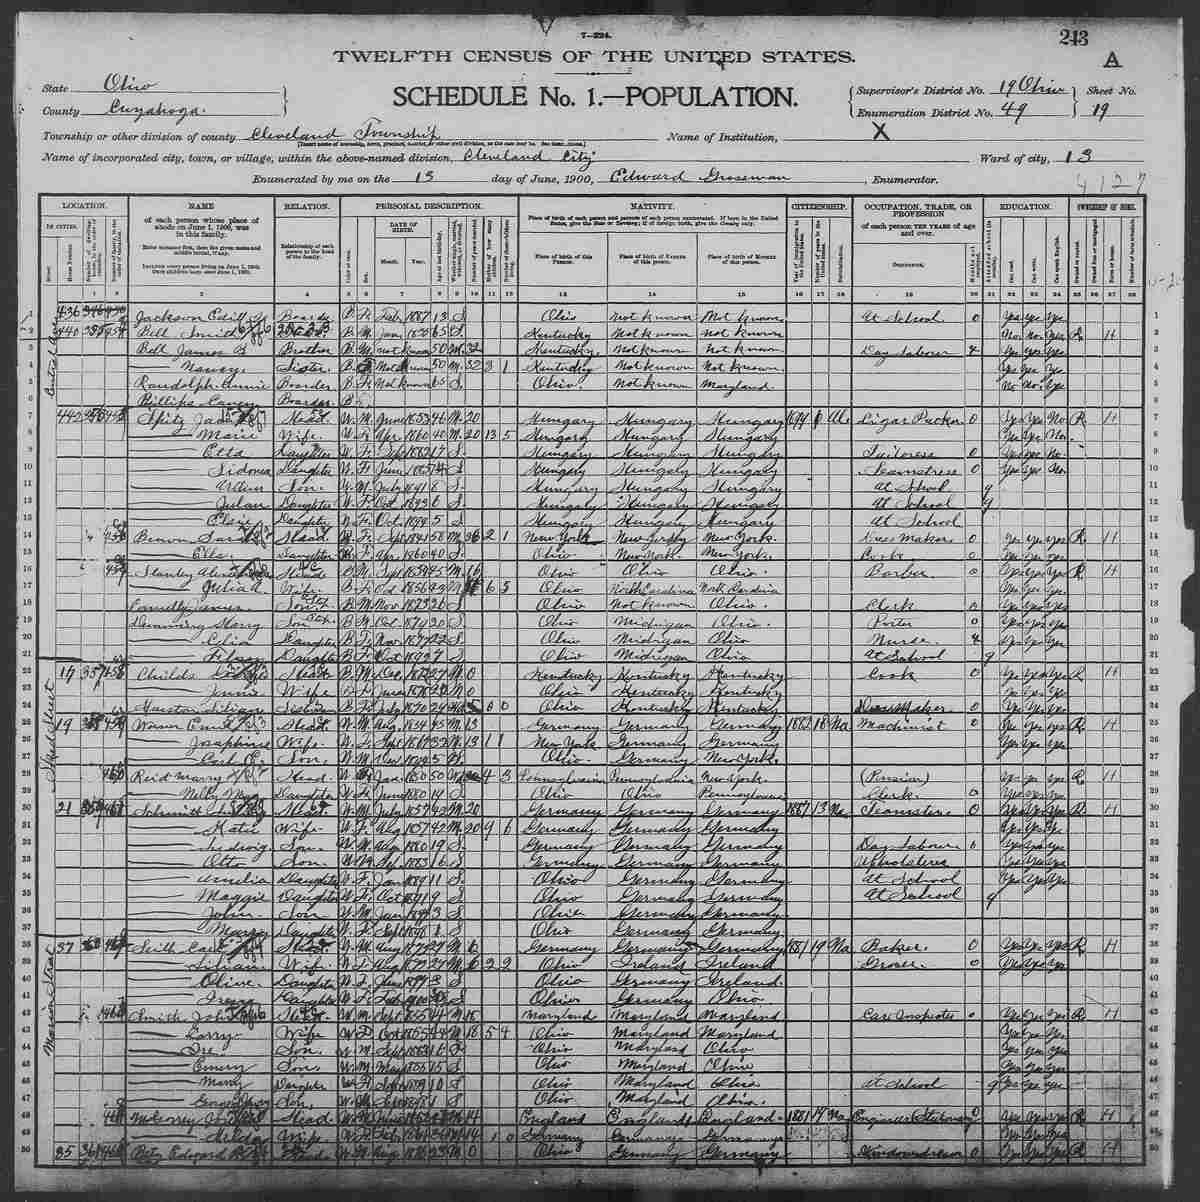 edward-lena-1900-census-p1_large